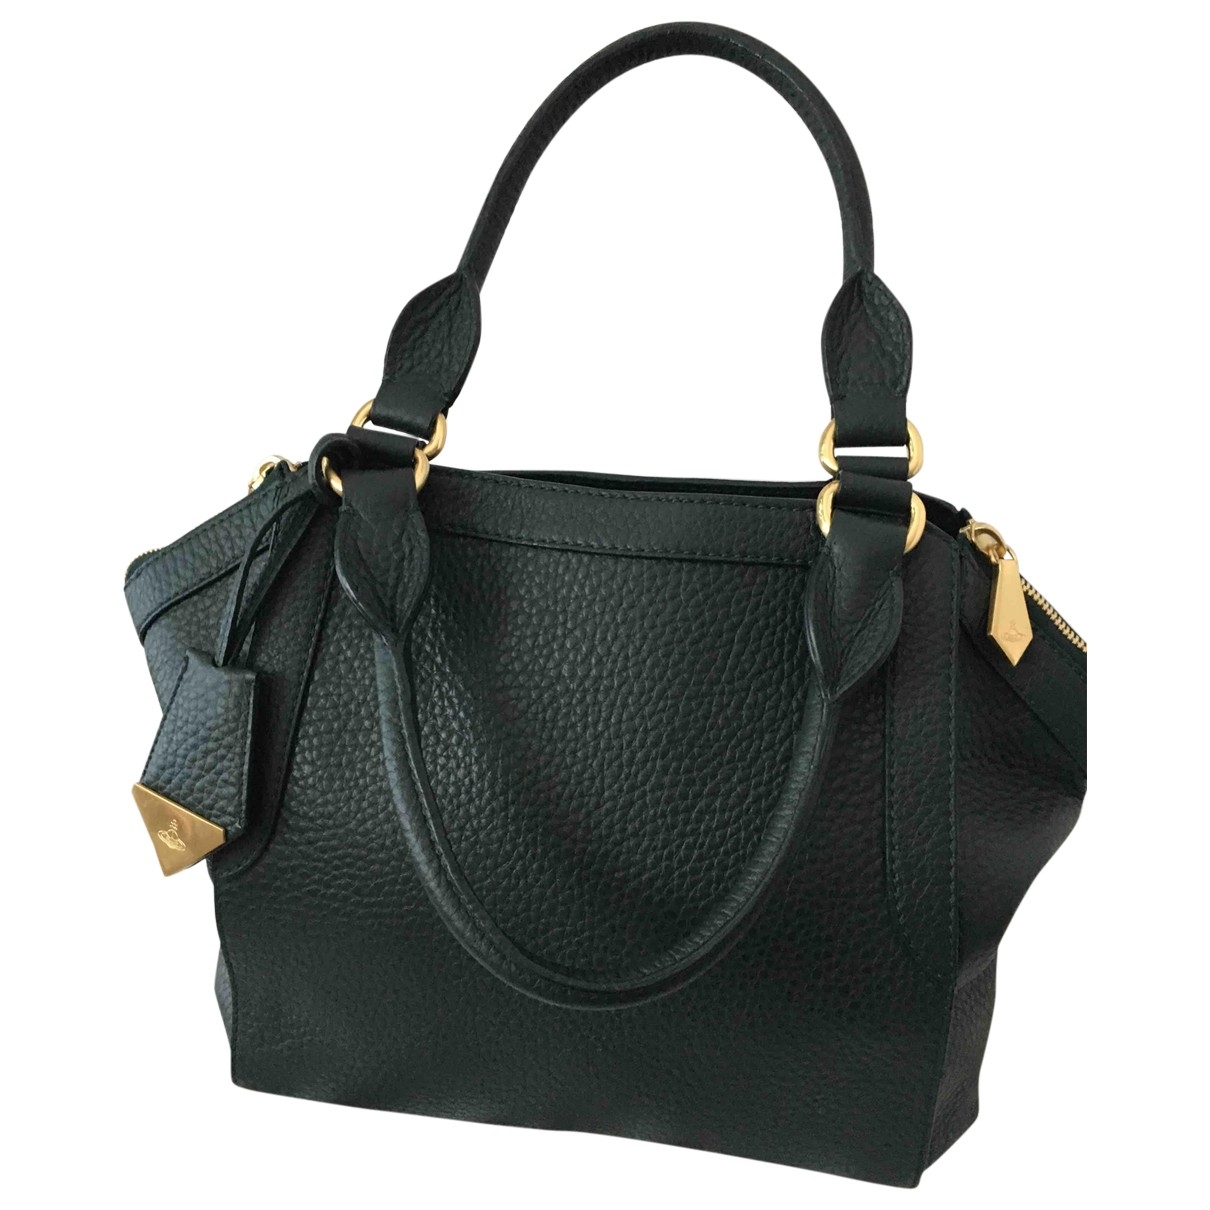 Vivienne Westwood \N Green Leather handbag for Women \N